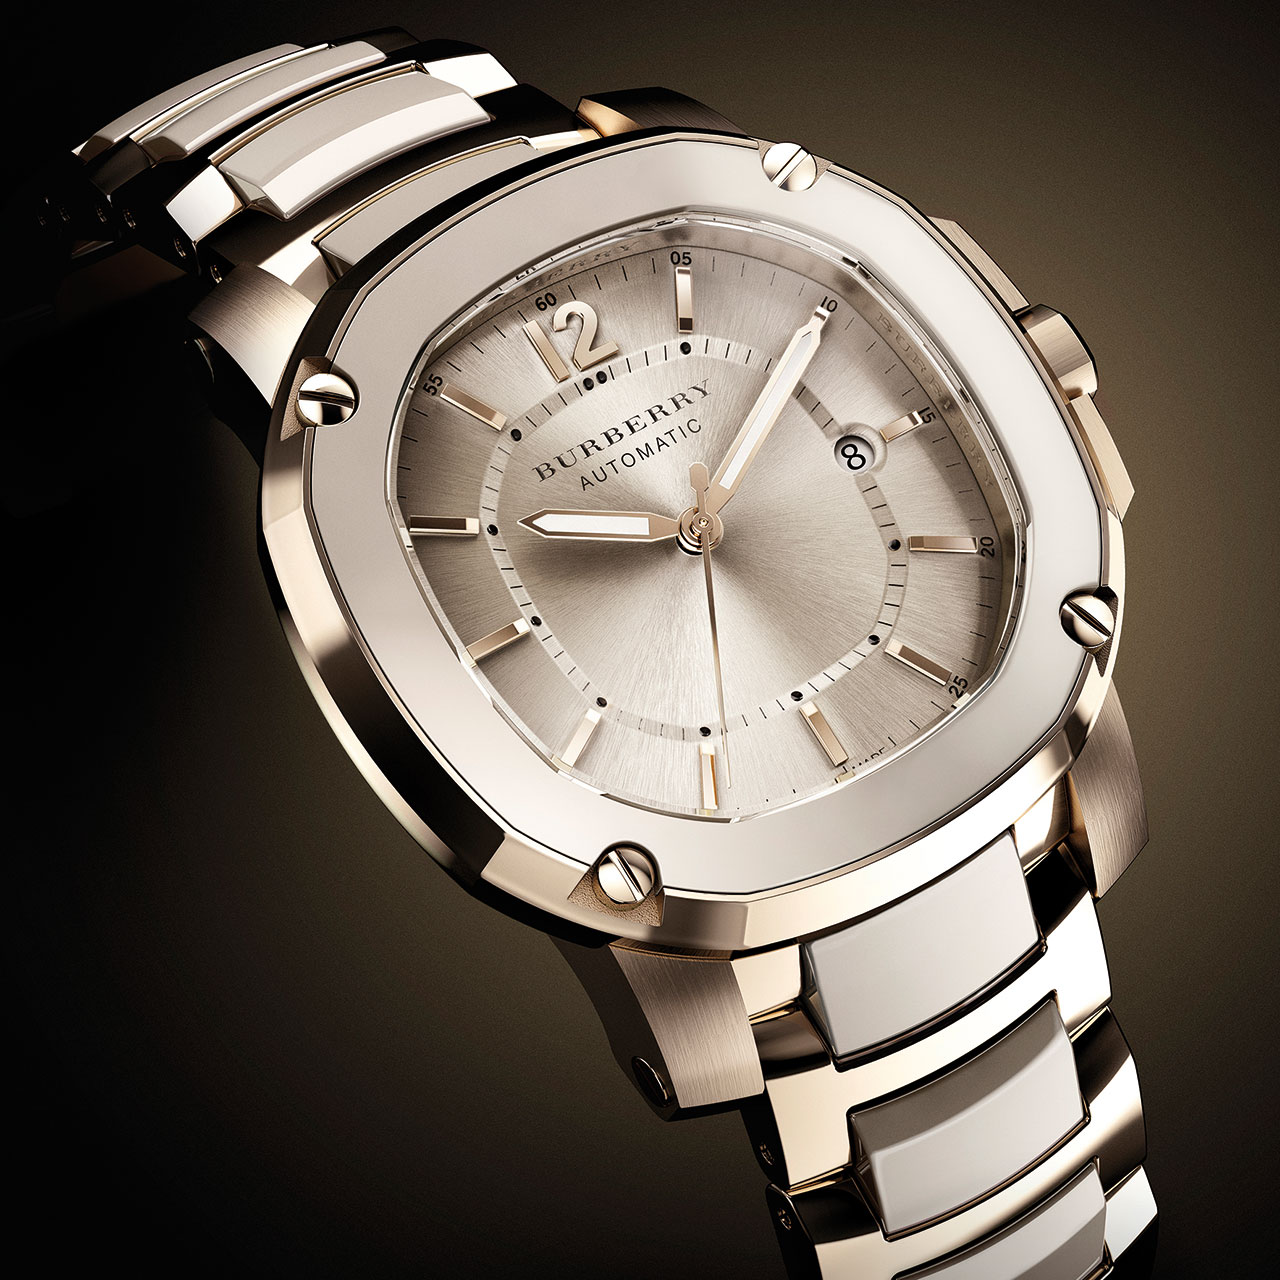 Burberry The Britain Limited Edition Trench Ceramic Automatic Watch